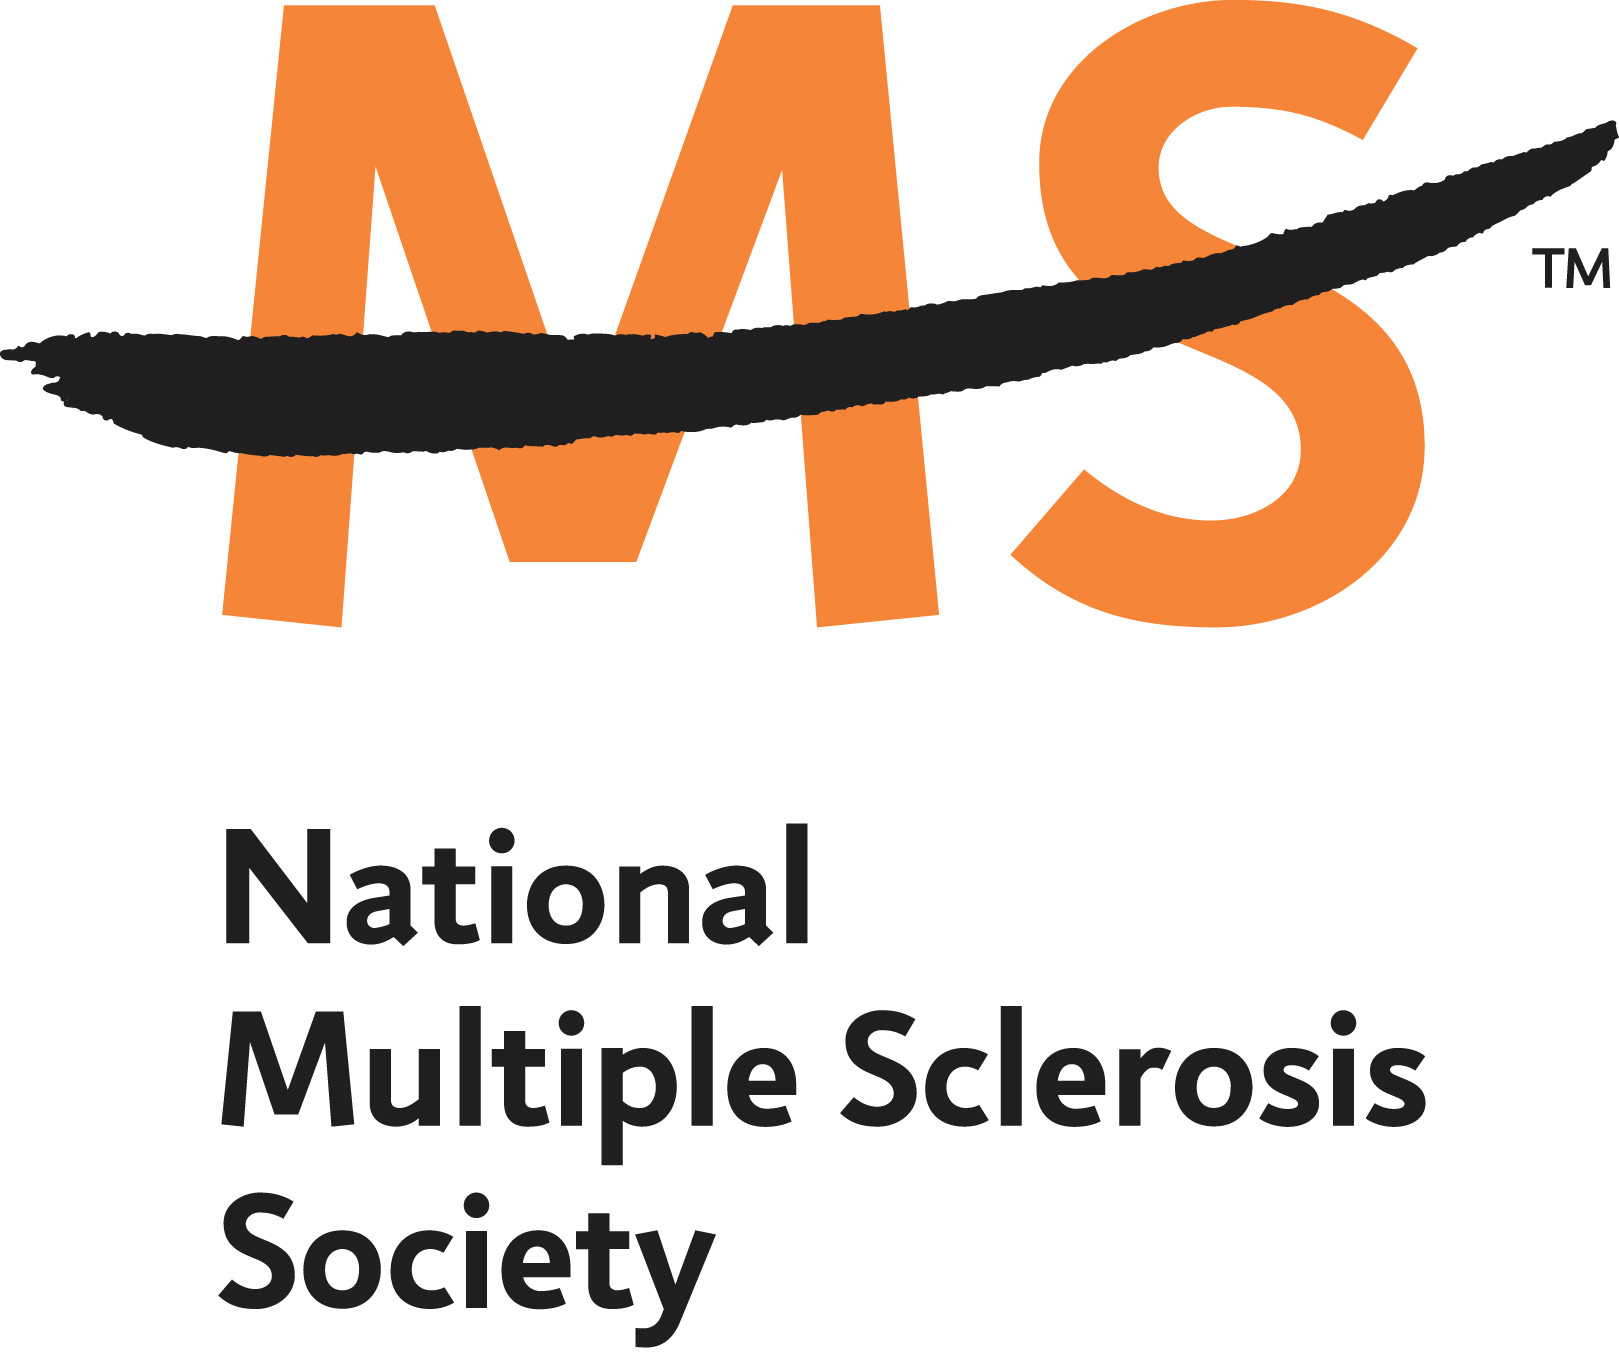 Alabama - Mississippi : National Multiple Sclerosis Society